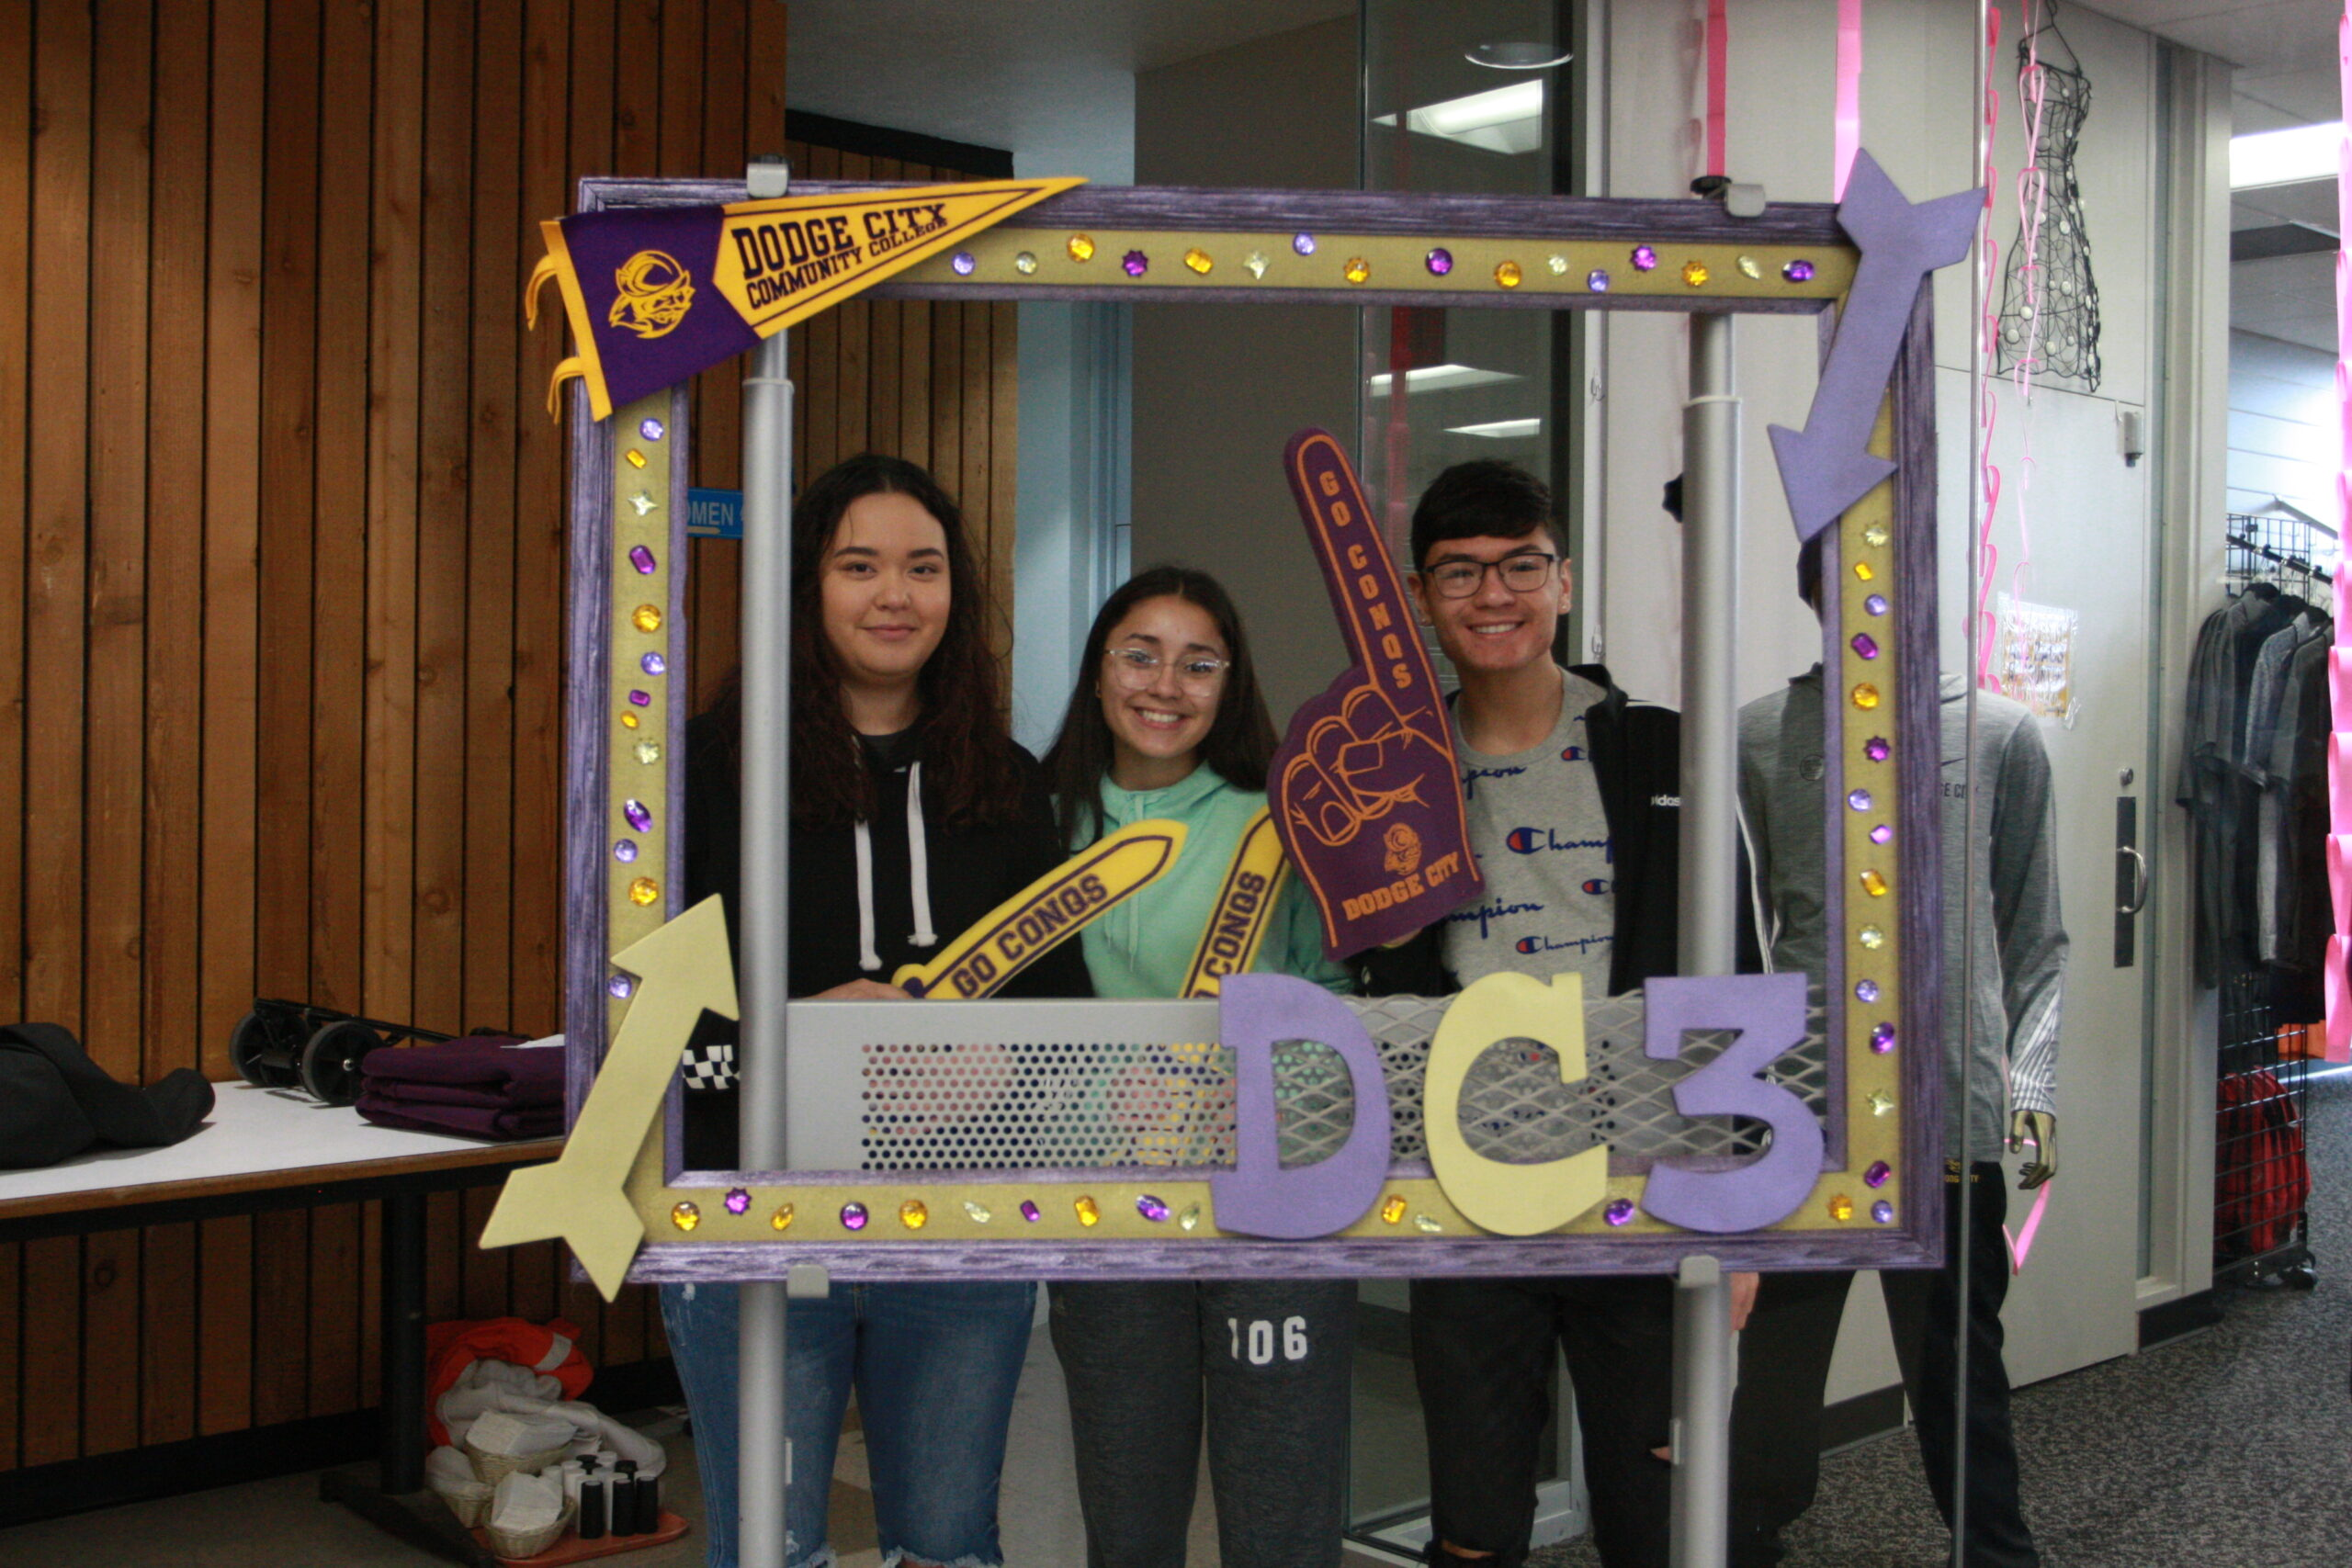 Juniors posing in a decorative frame during the 2020 Junior Experience